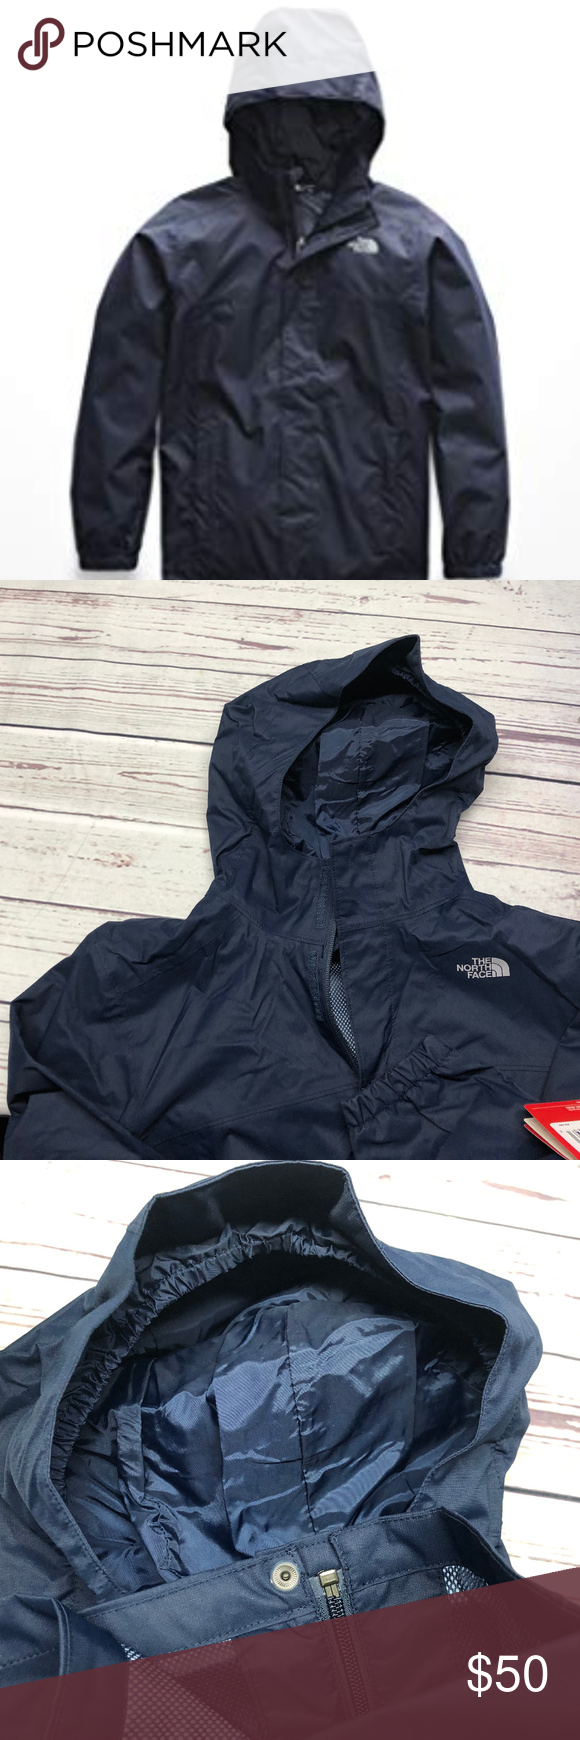 e6646cd53 The North Face Boy's Resolve Rectie Jacket new with tags boys large ...